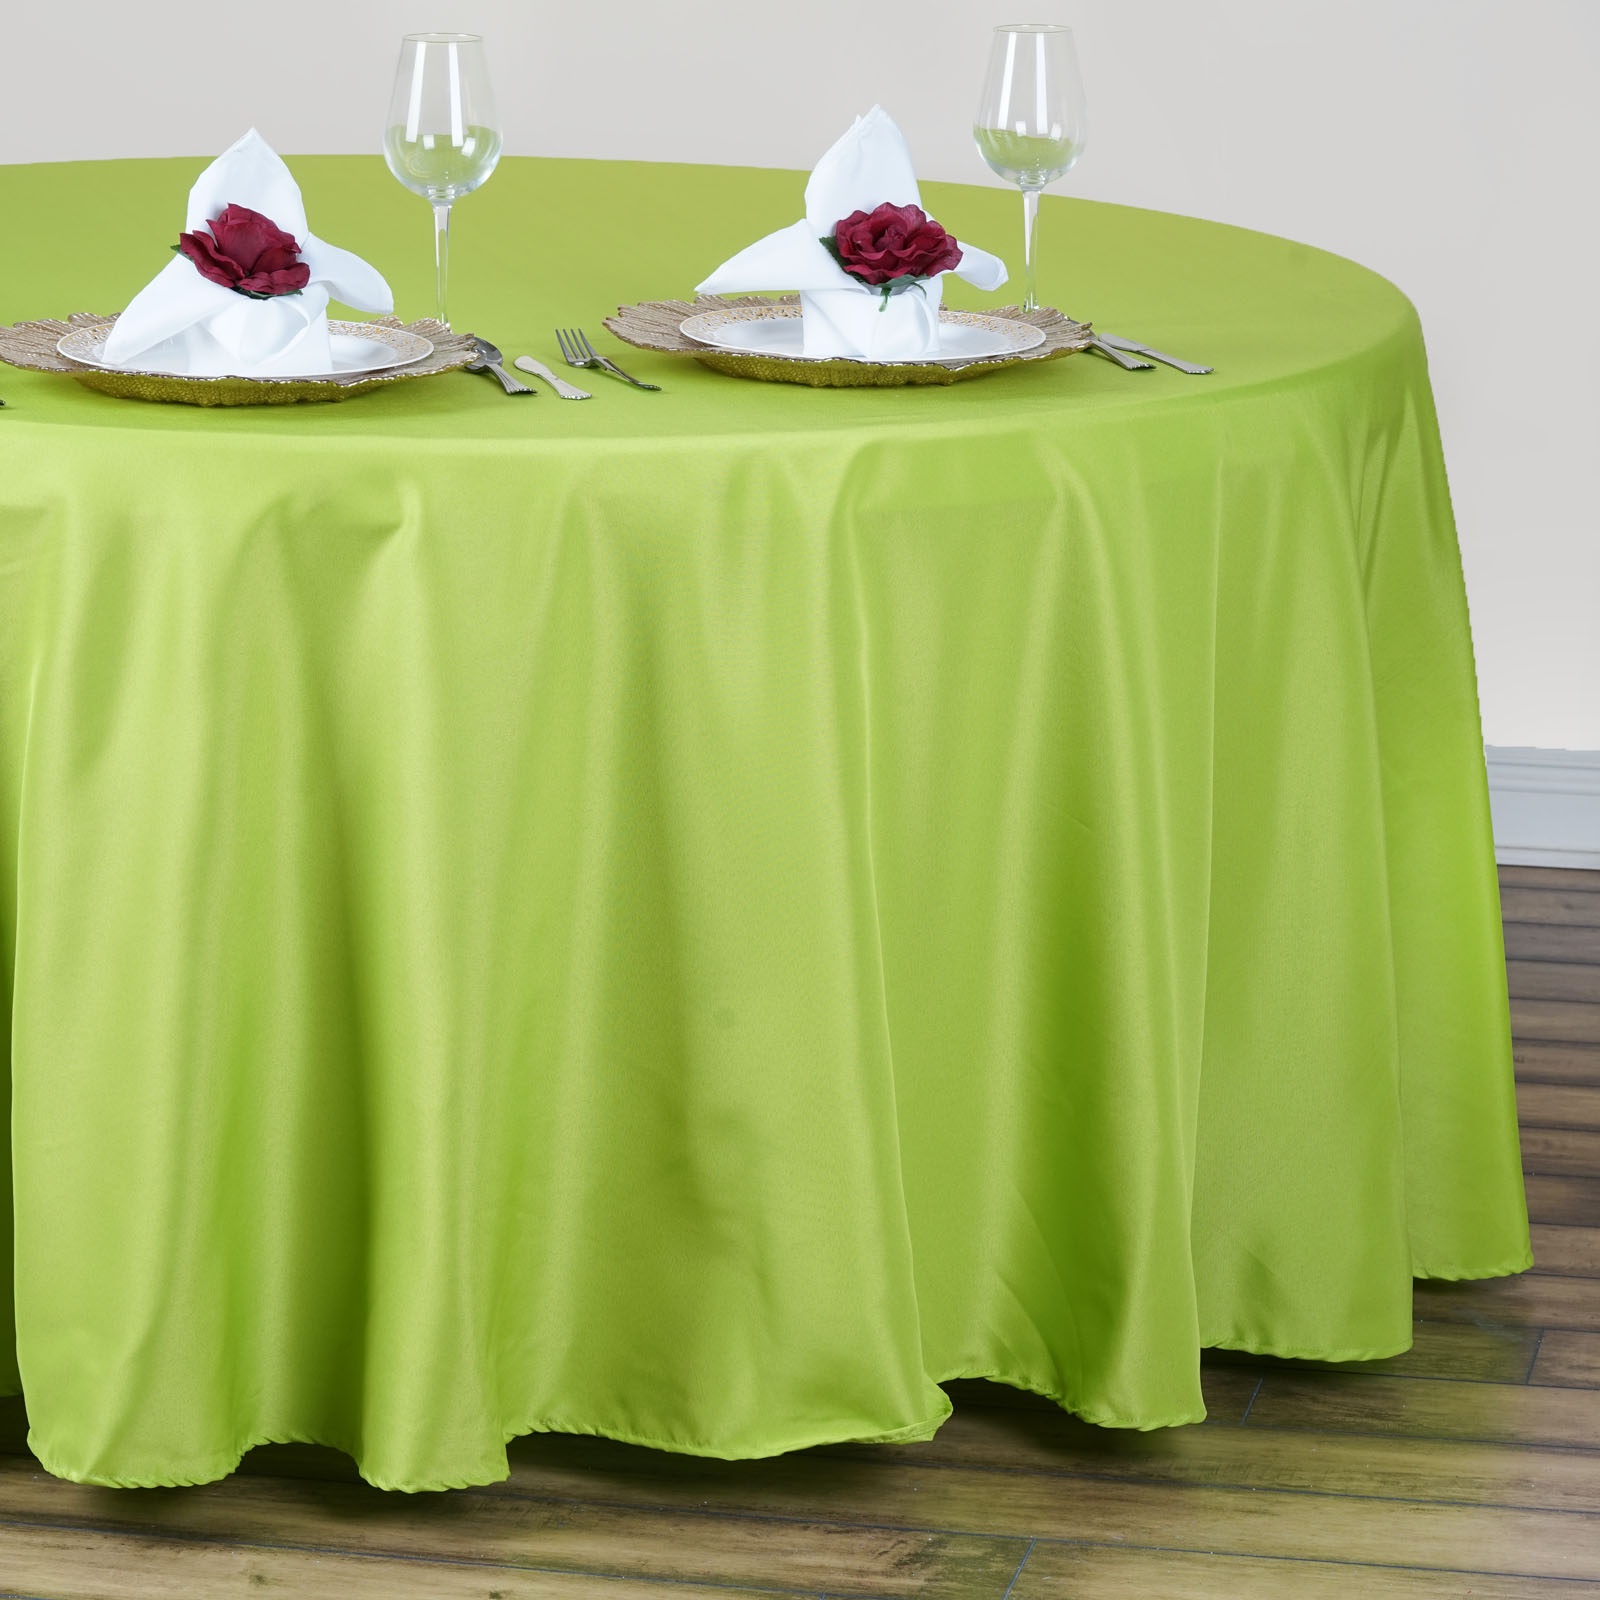 "BalsaCircle 120"" Round Polyester Tablecloth for Party Wedding Reception Catering Dining Home Table Linens"